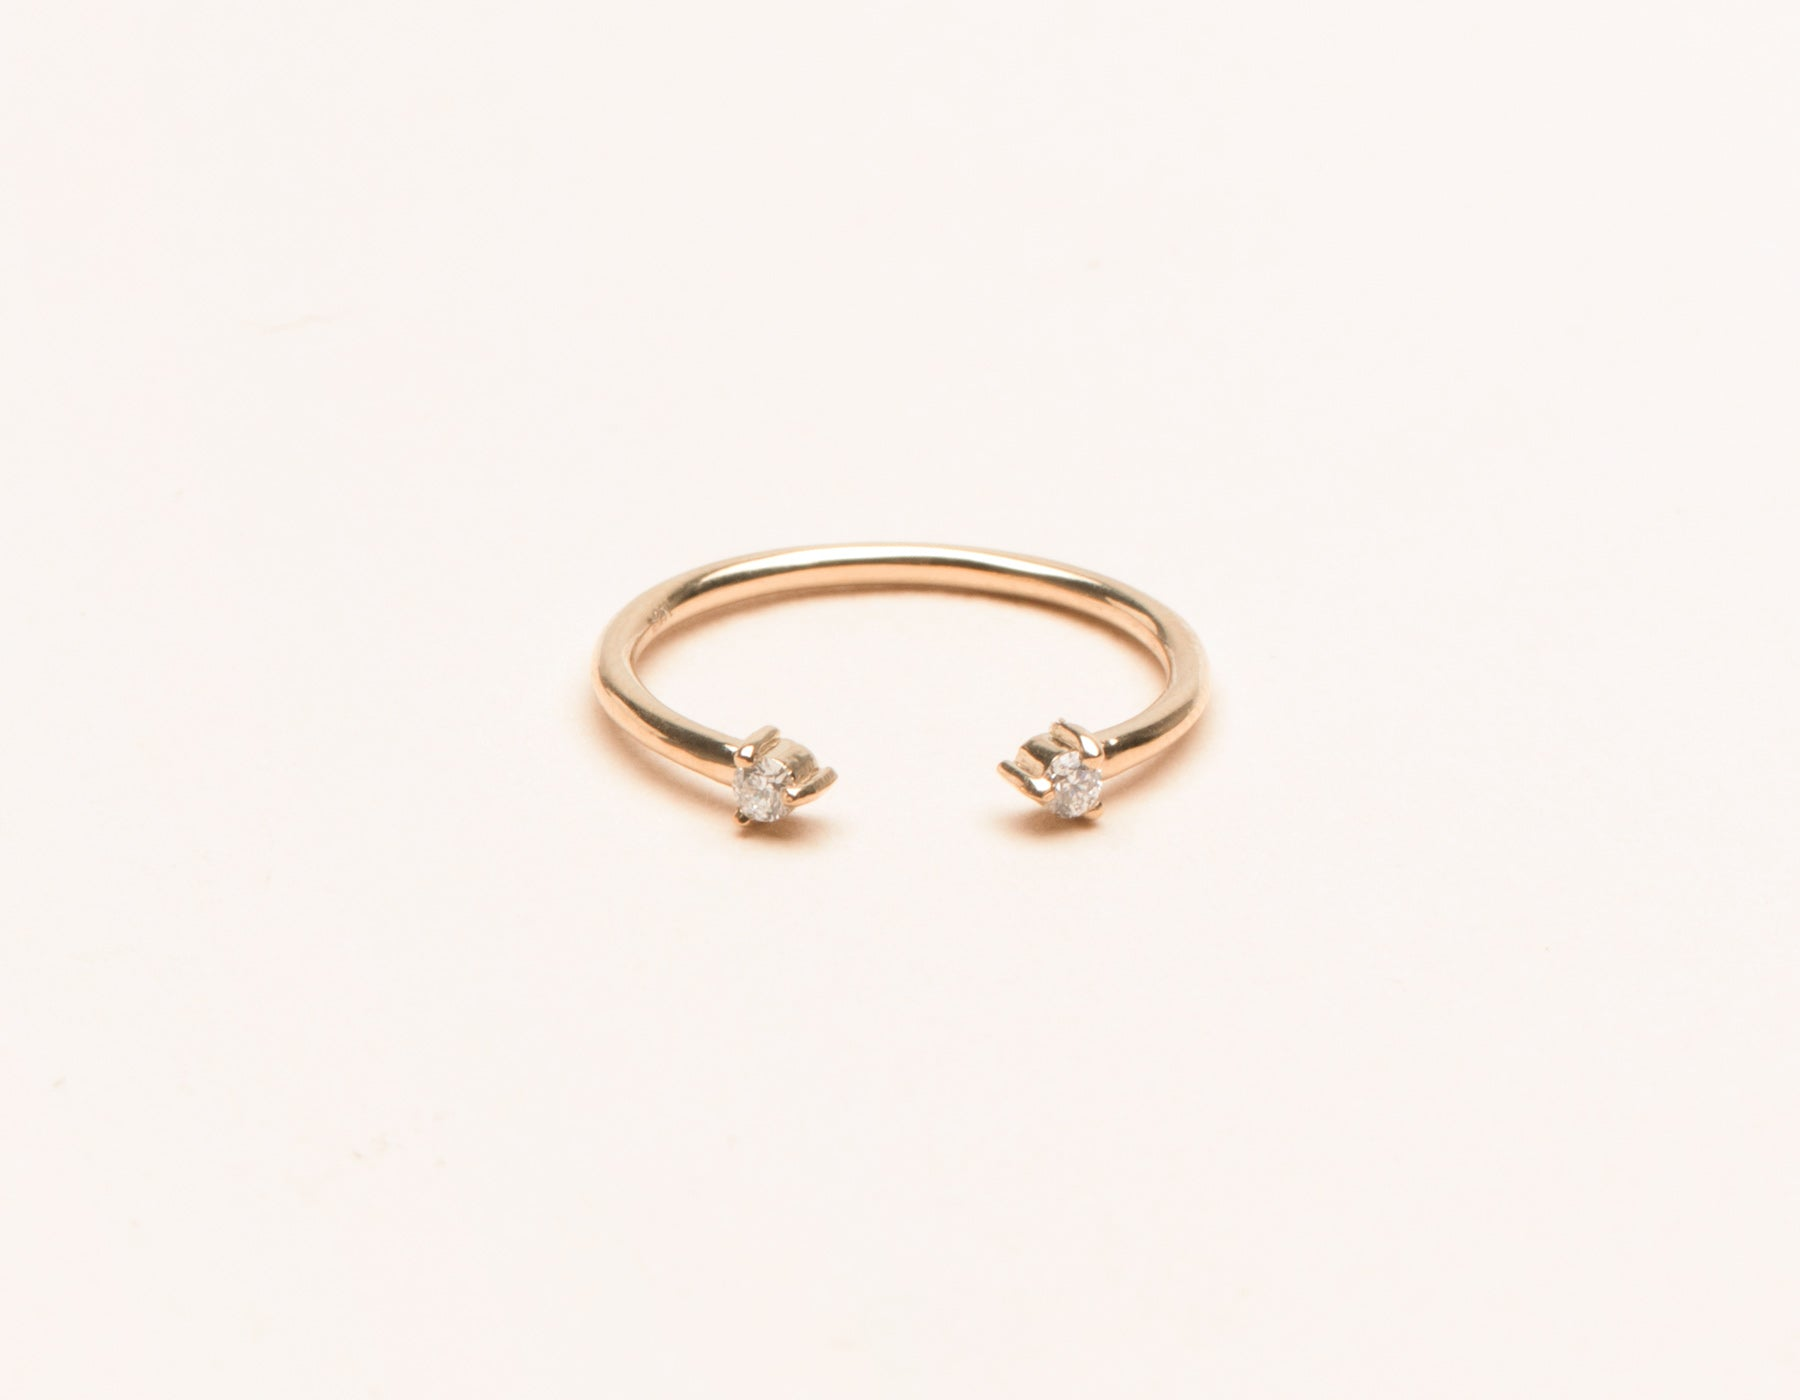 Classic minimalist 14k solid gold small Diamond Dot Cuff stacker ring by Vrai and Oro, 14K Rose Gold